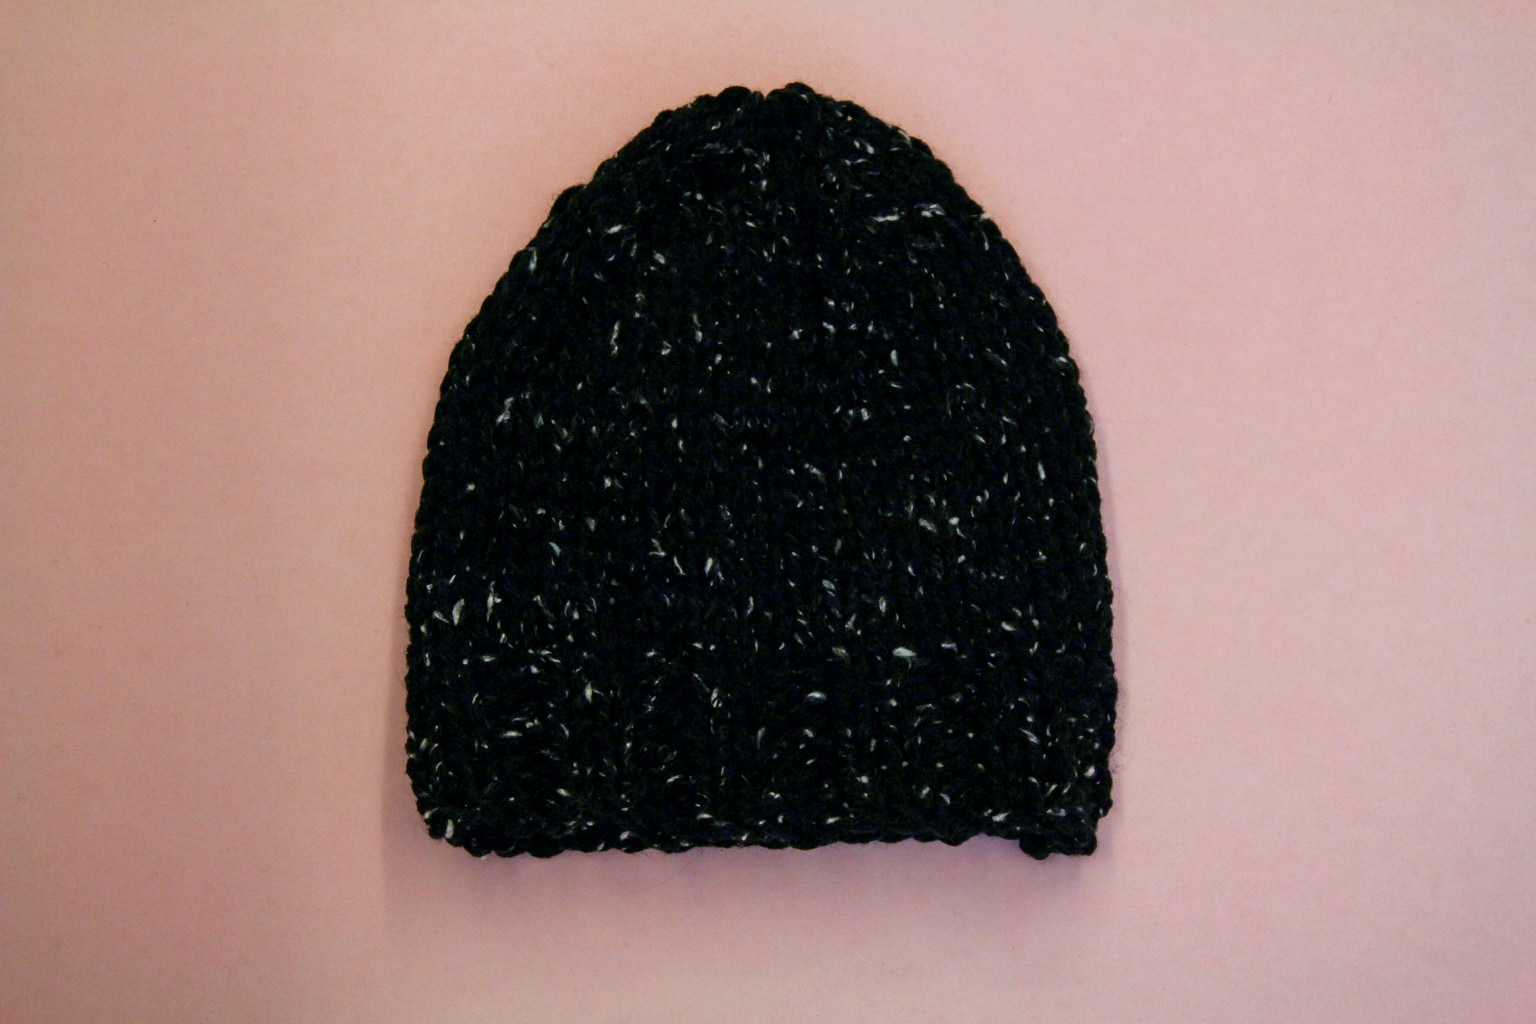 Learn to knit with this easy DIY beanie tutorial!